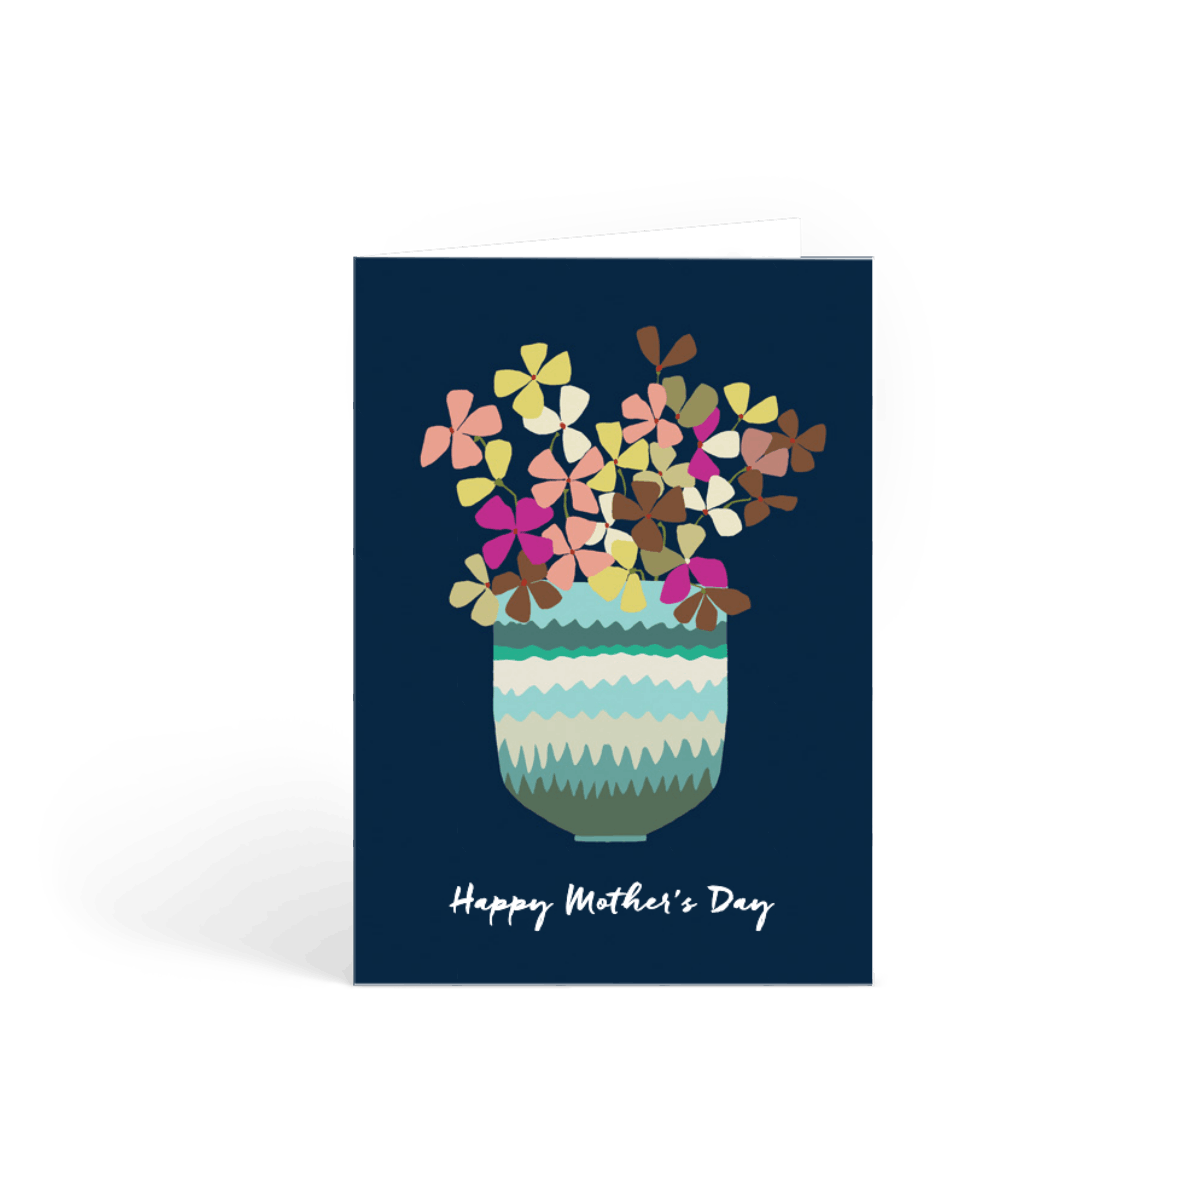 Https%3a%2f%2fwww.papier.com%2fproduct image%2f17828%2f2%2fhydrangea vase 4653 front 1580757545.png?ixlib=rb 1.1